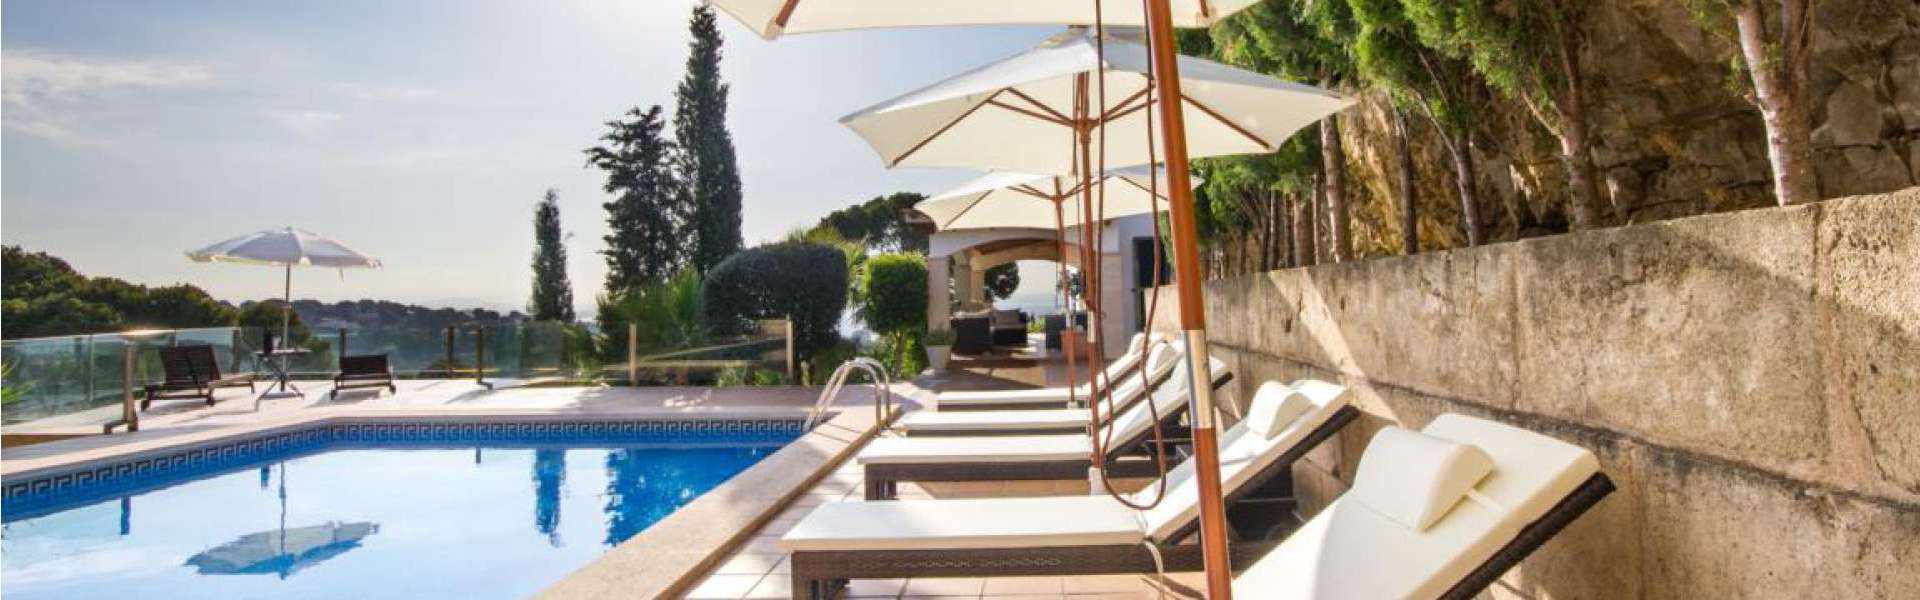 Bendinat - Luxury villa with stunning views of the bay of Palma